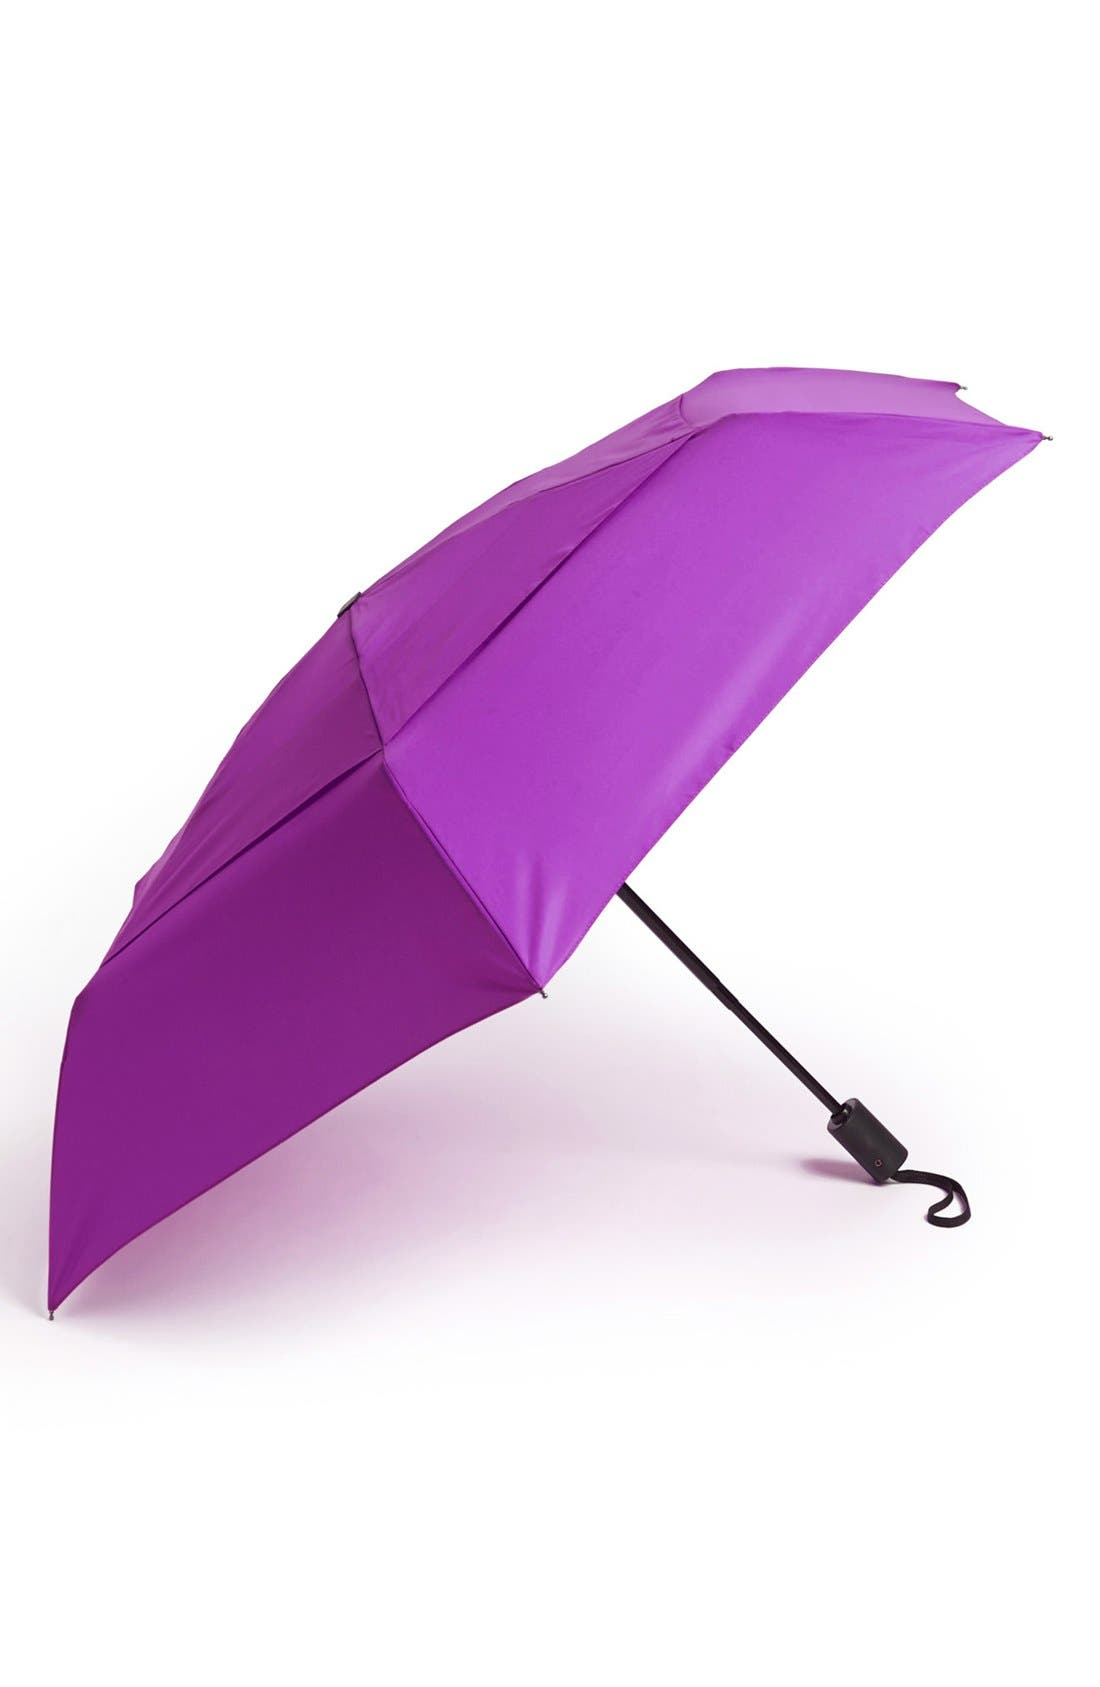 'WINDPRO' AUTO OPEN & CLOSE UMBRELLA - PURPLE